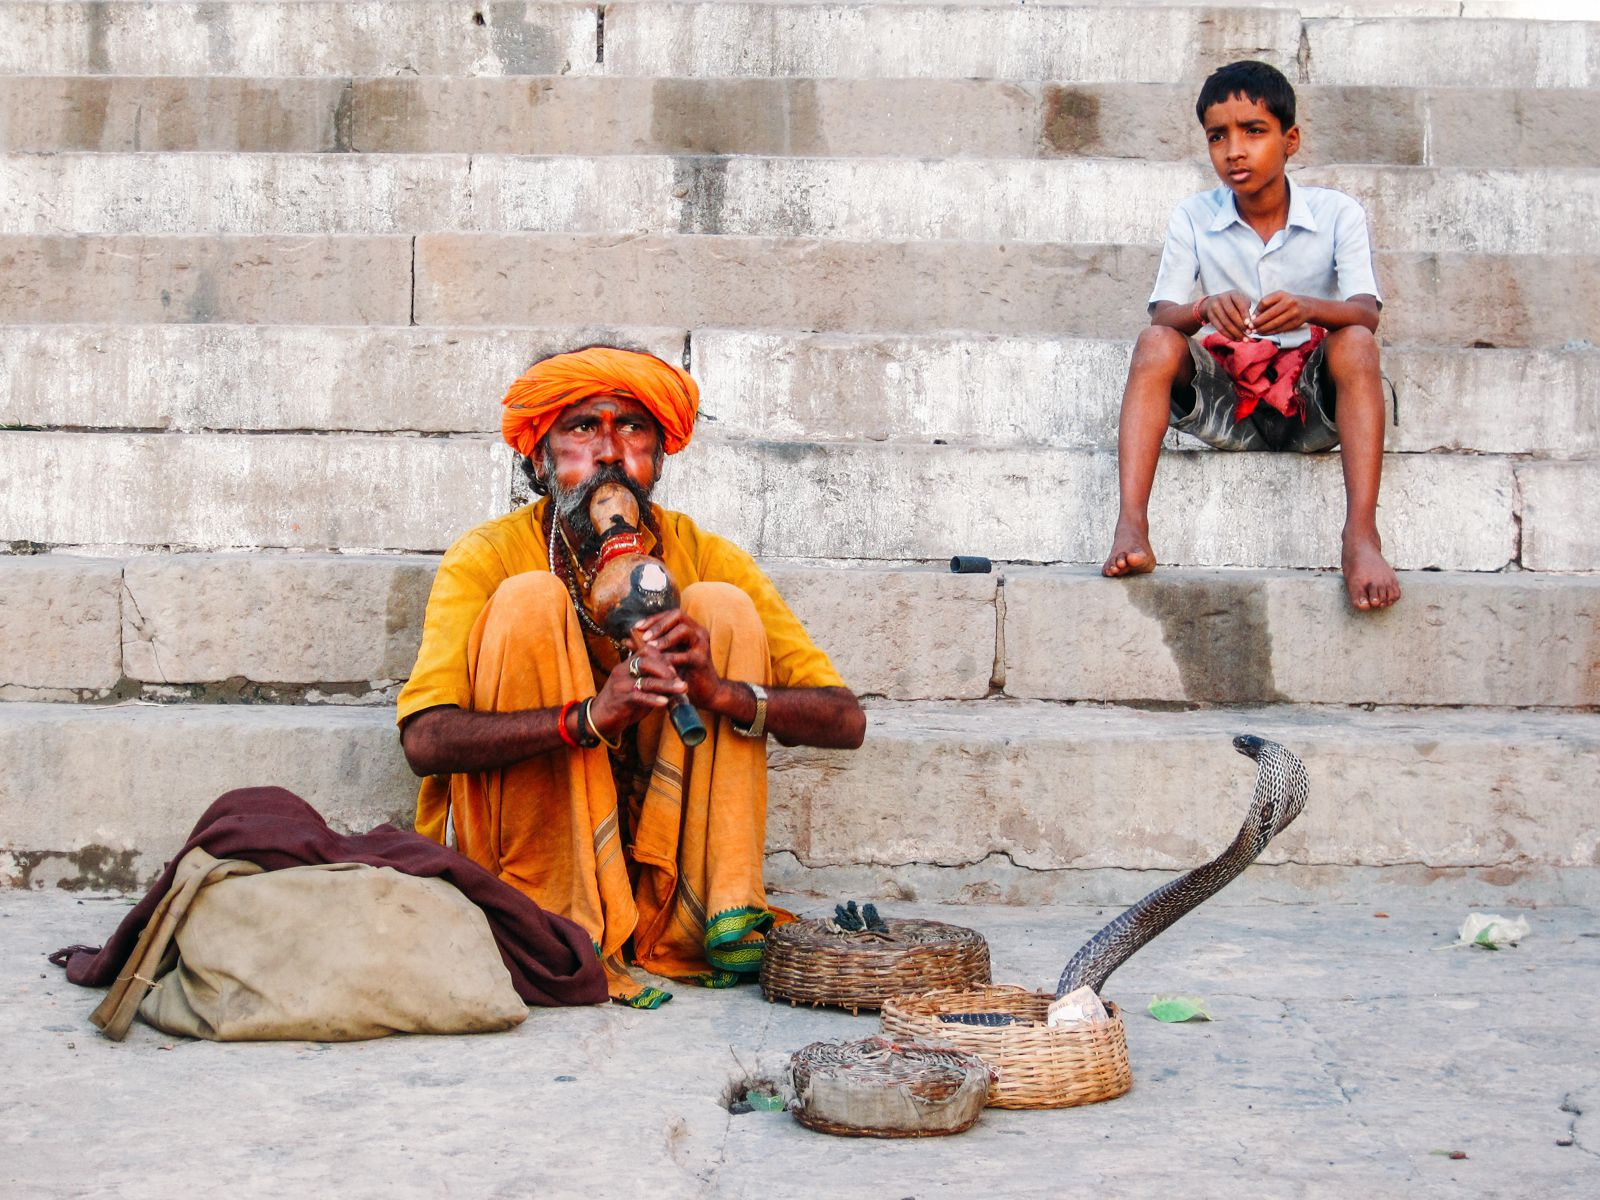 Snake Charming Cruelty (2)